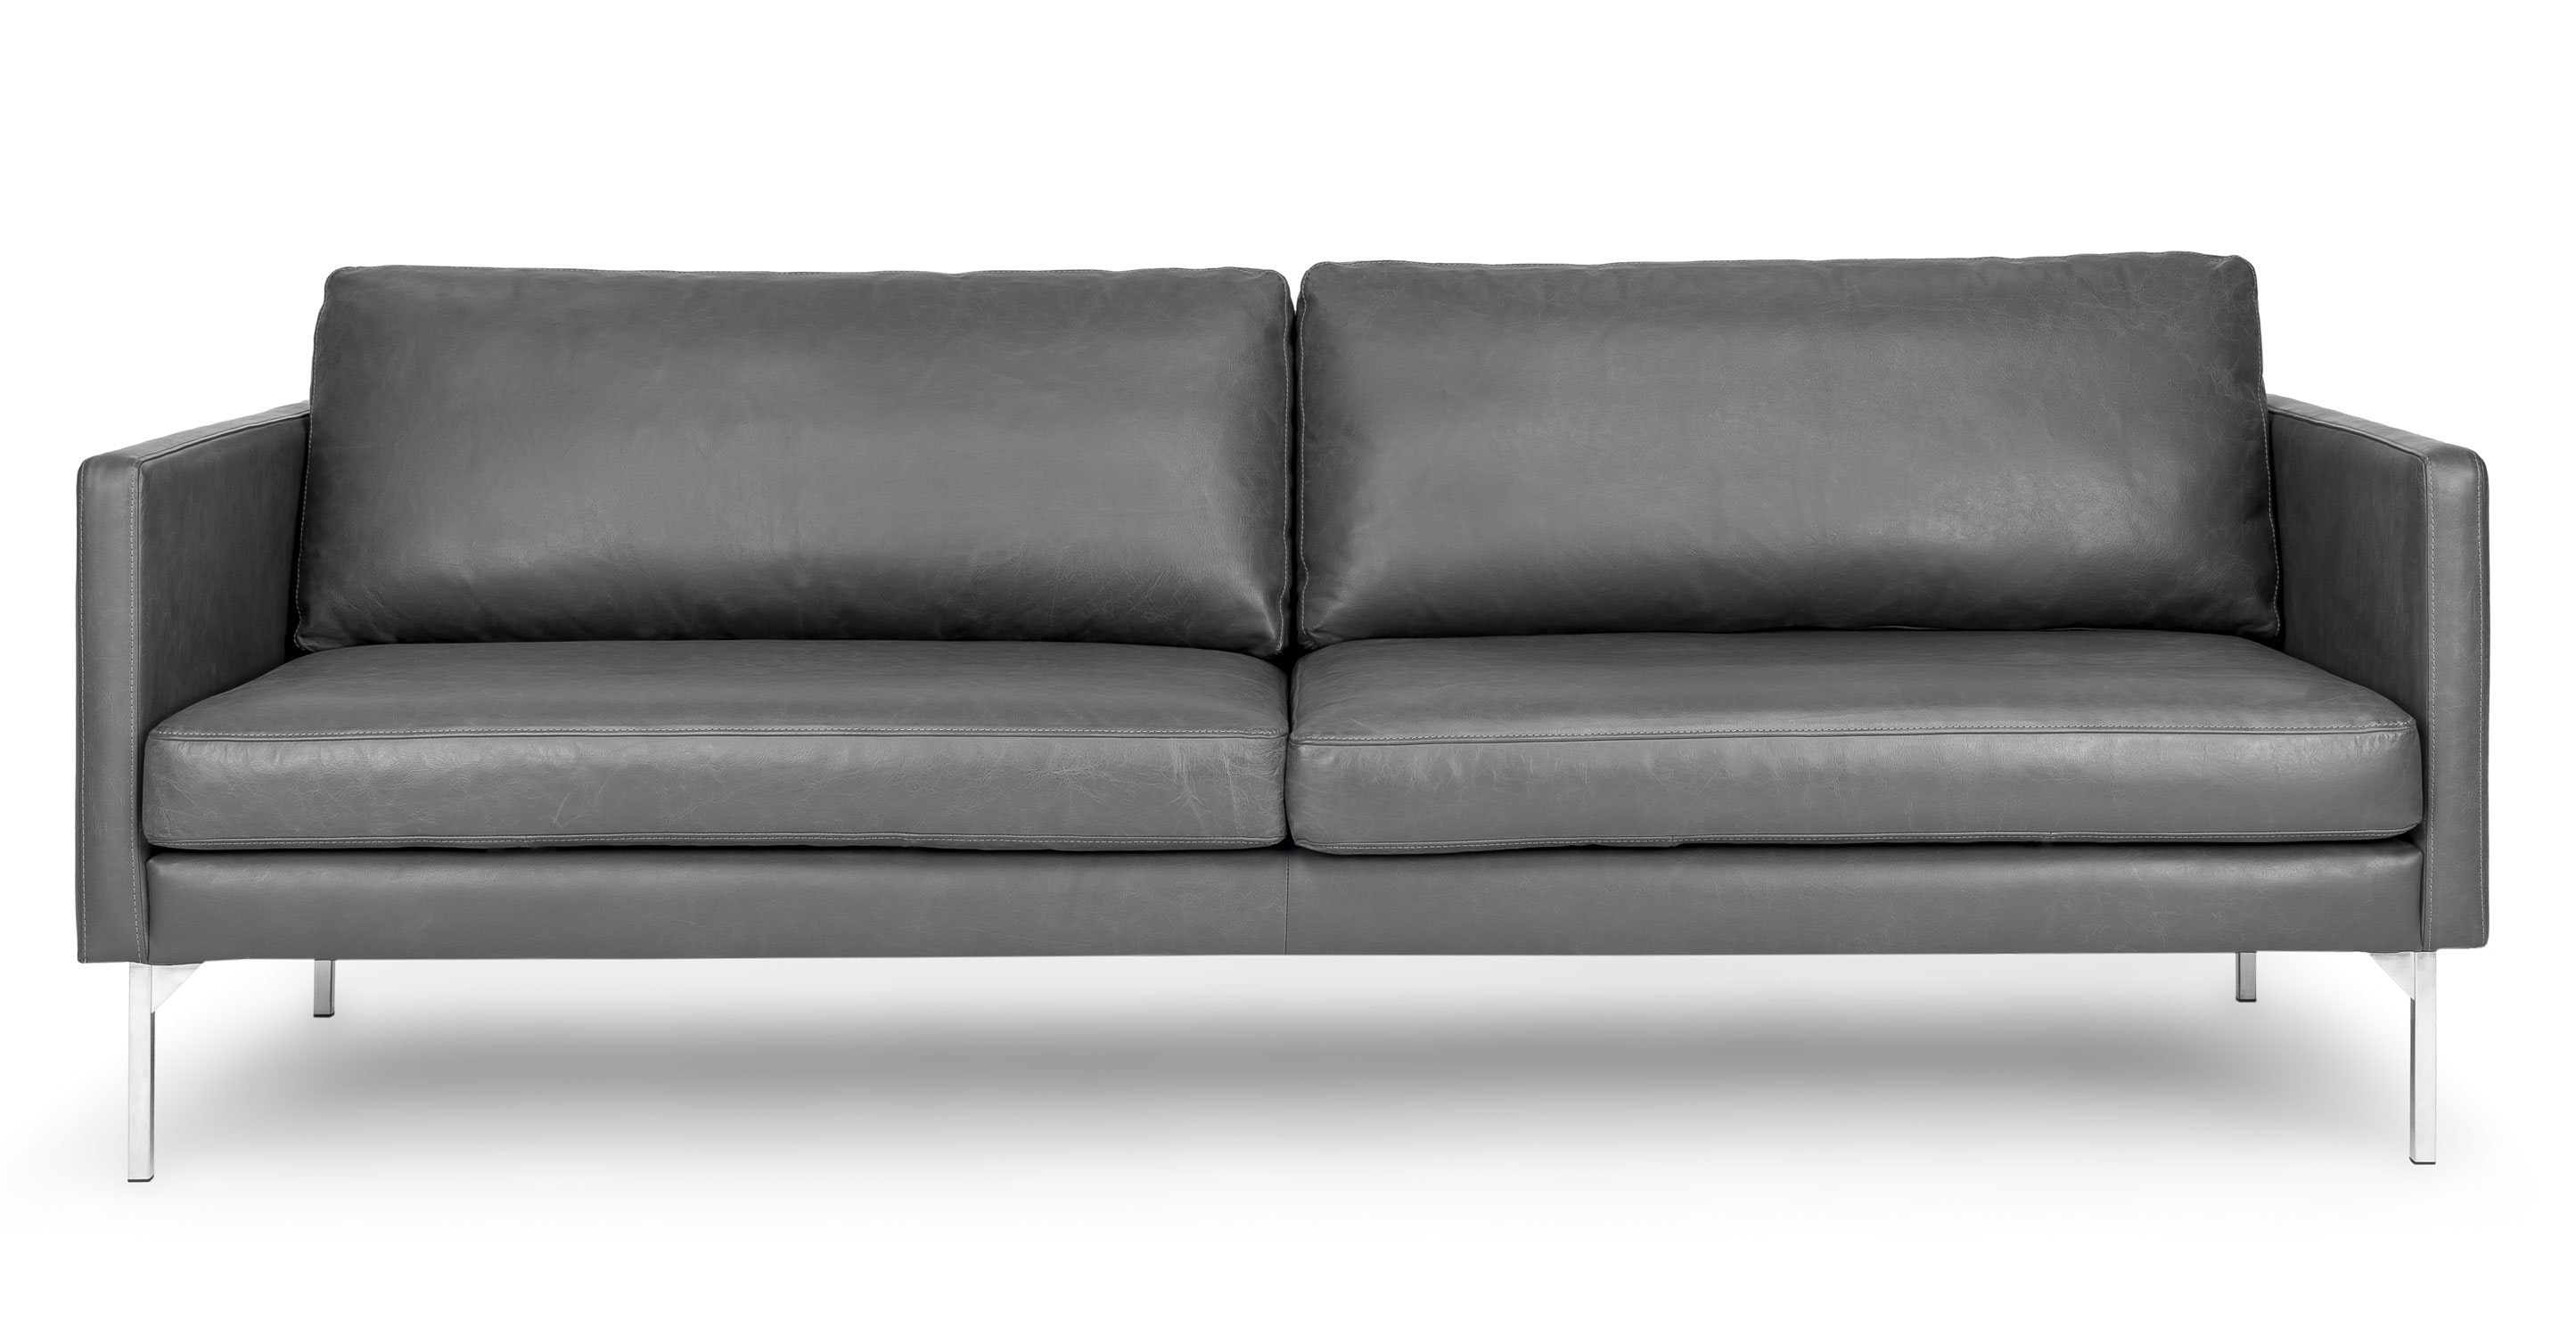 Gray Leather Sofa, 3 Seater, Steel Legs | Article Echo Contemporary  Furniture